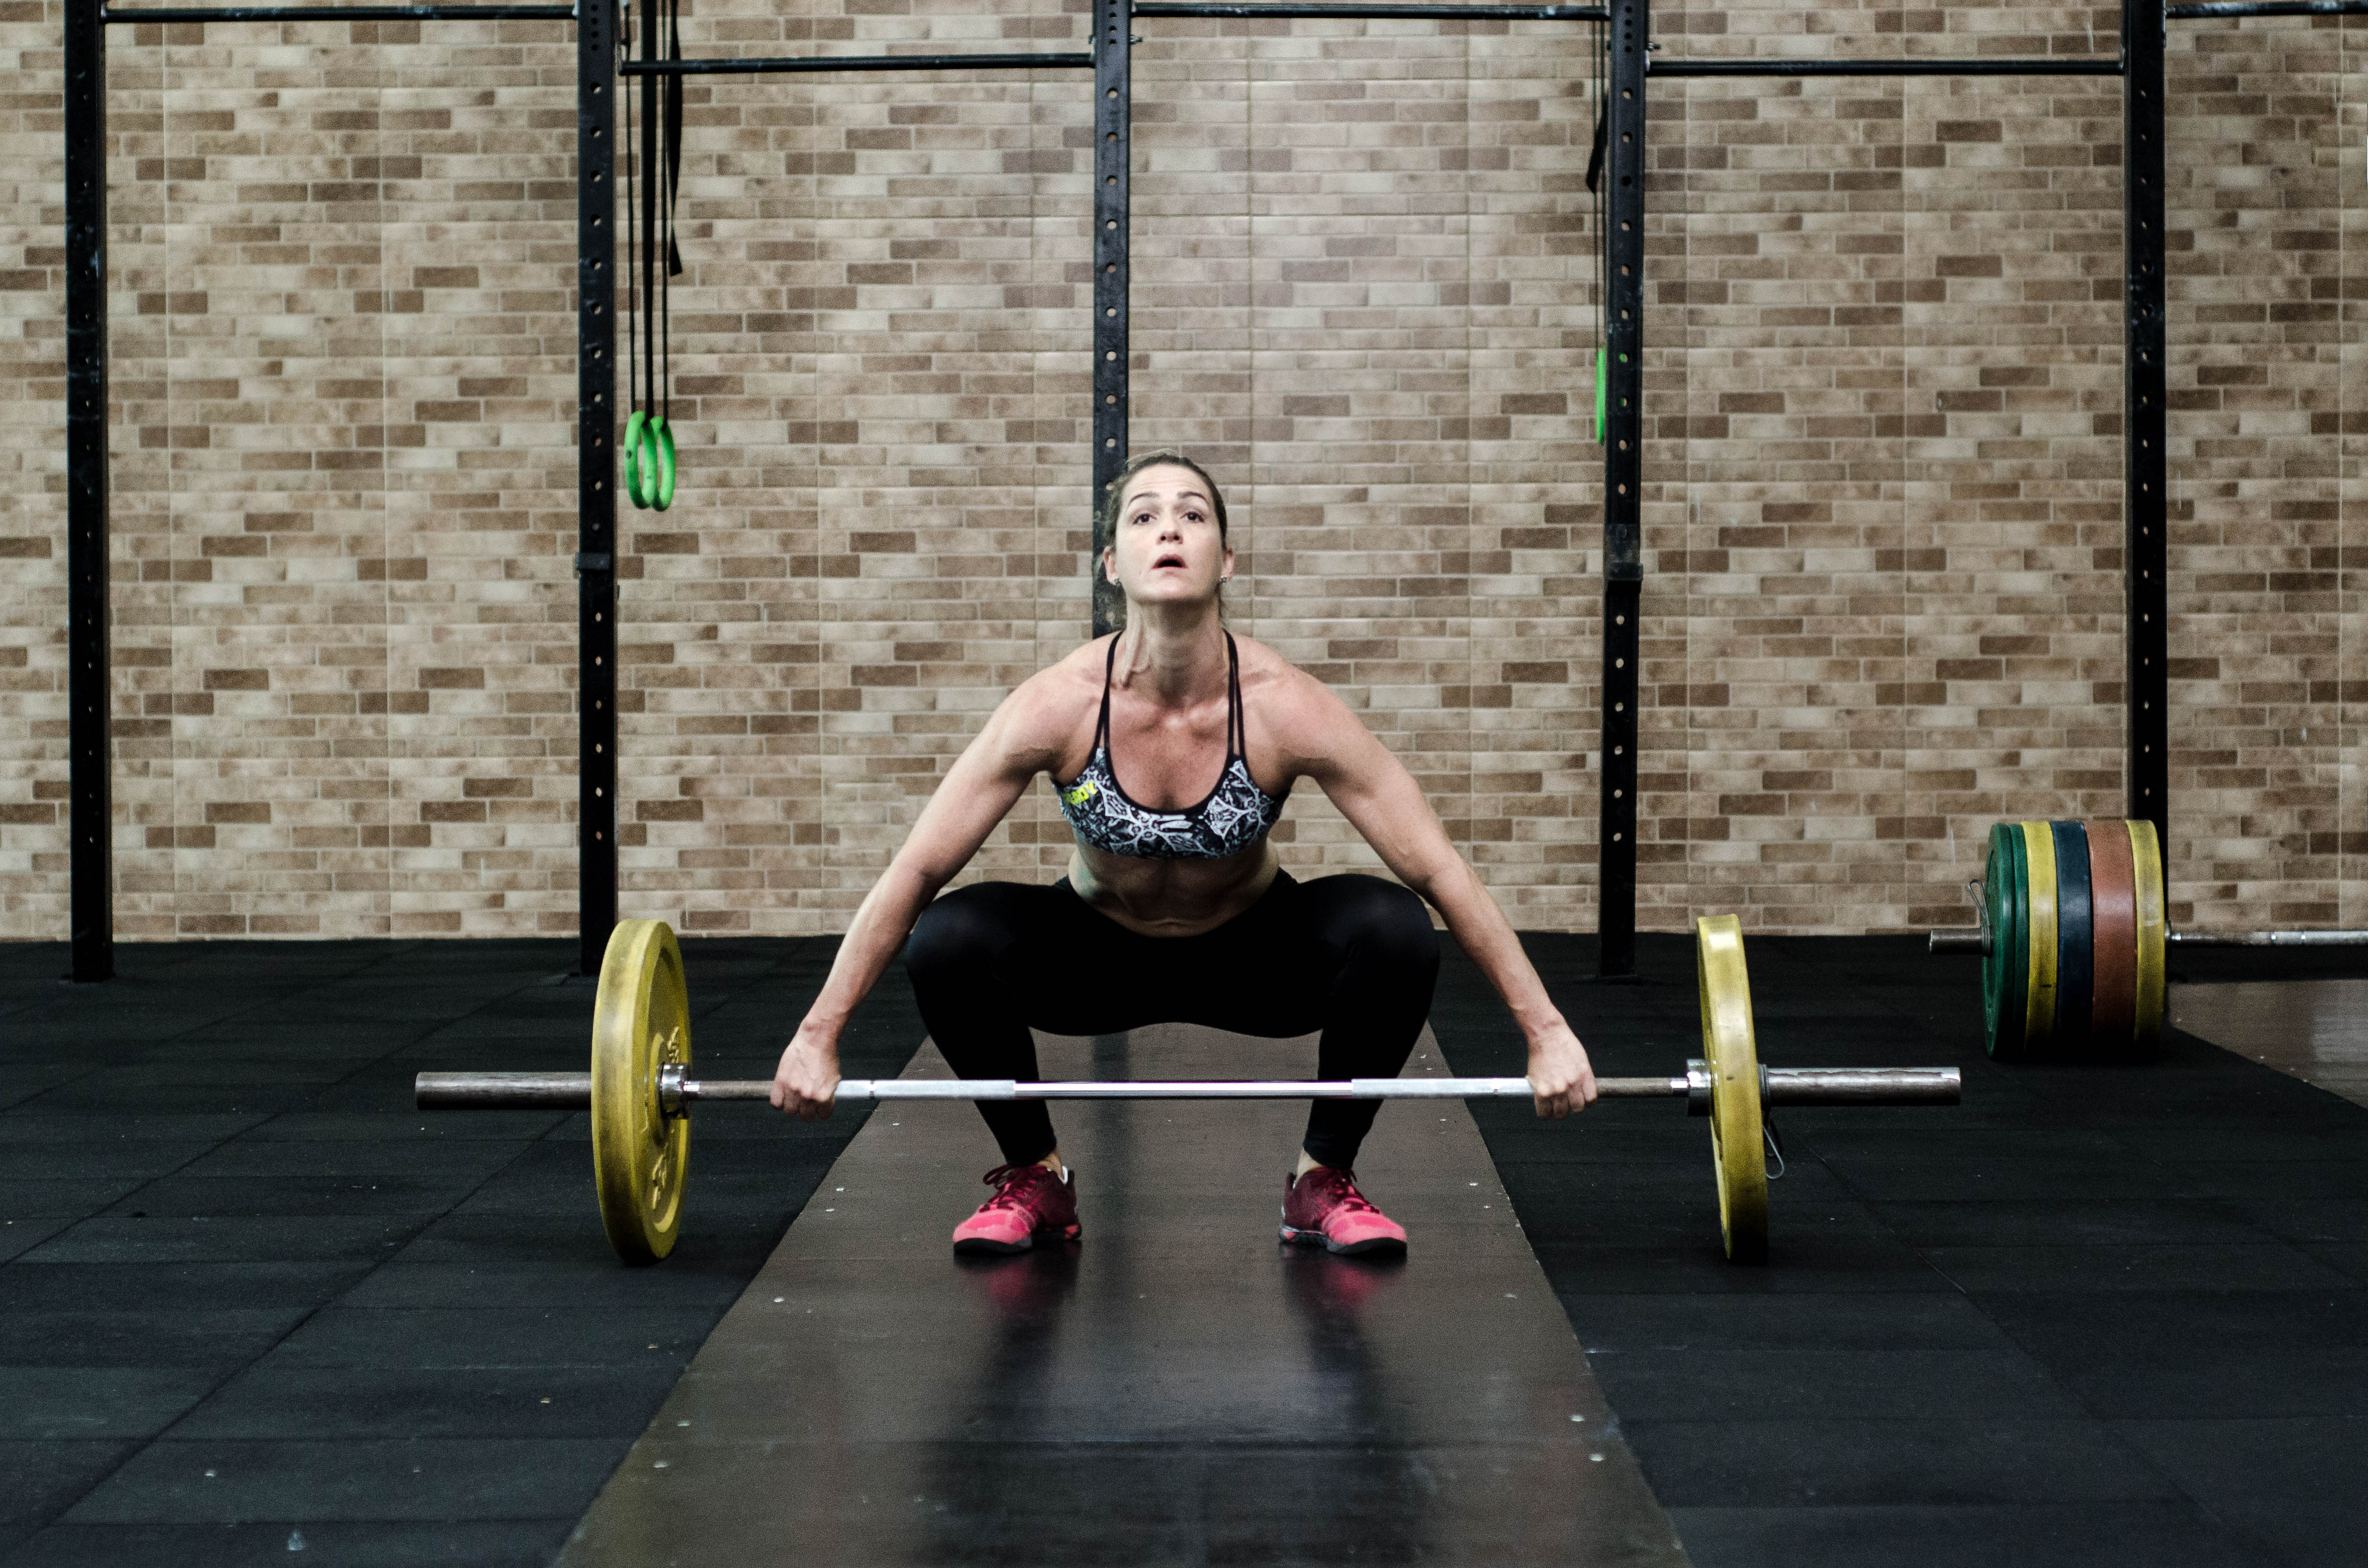 exercising woman with barbell